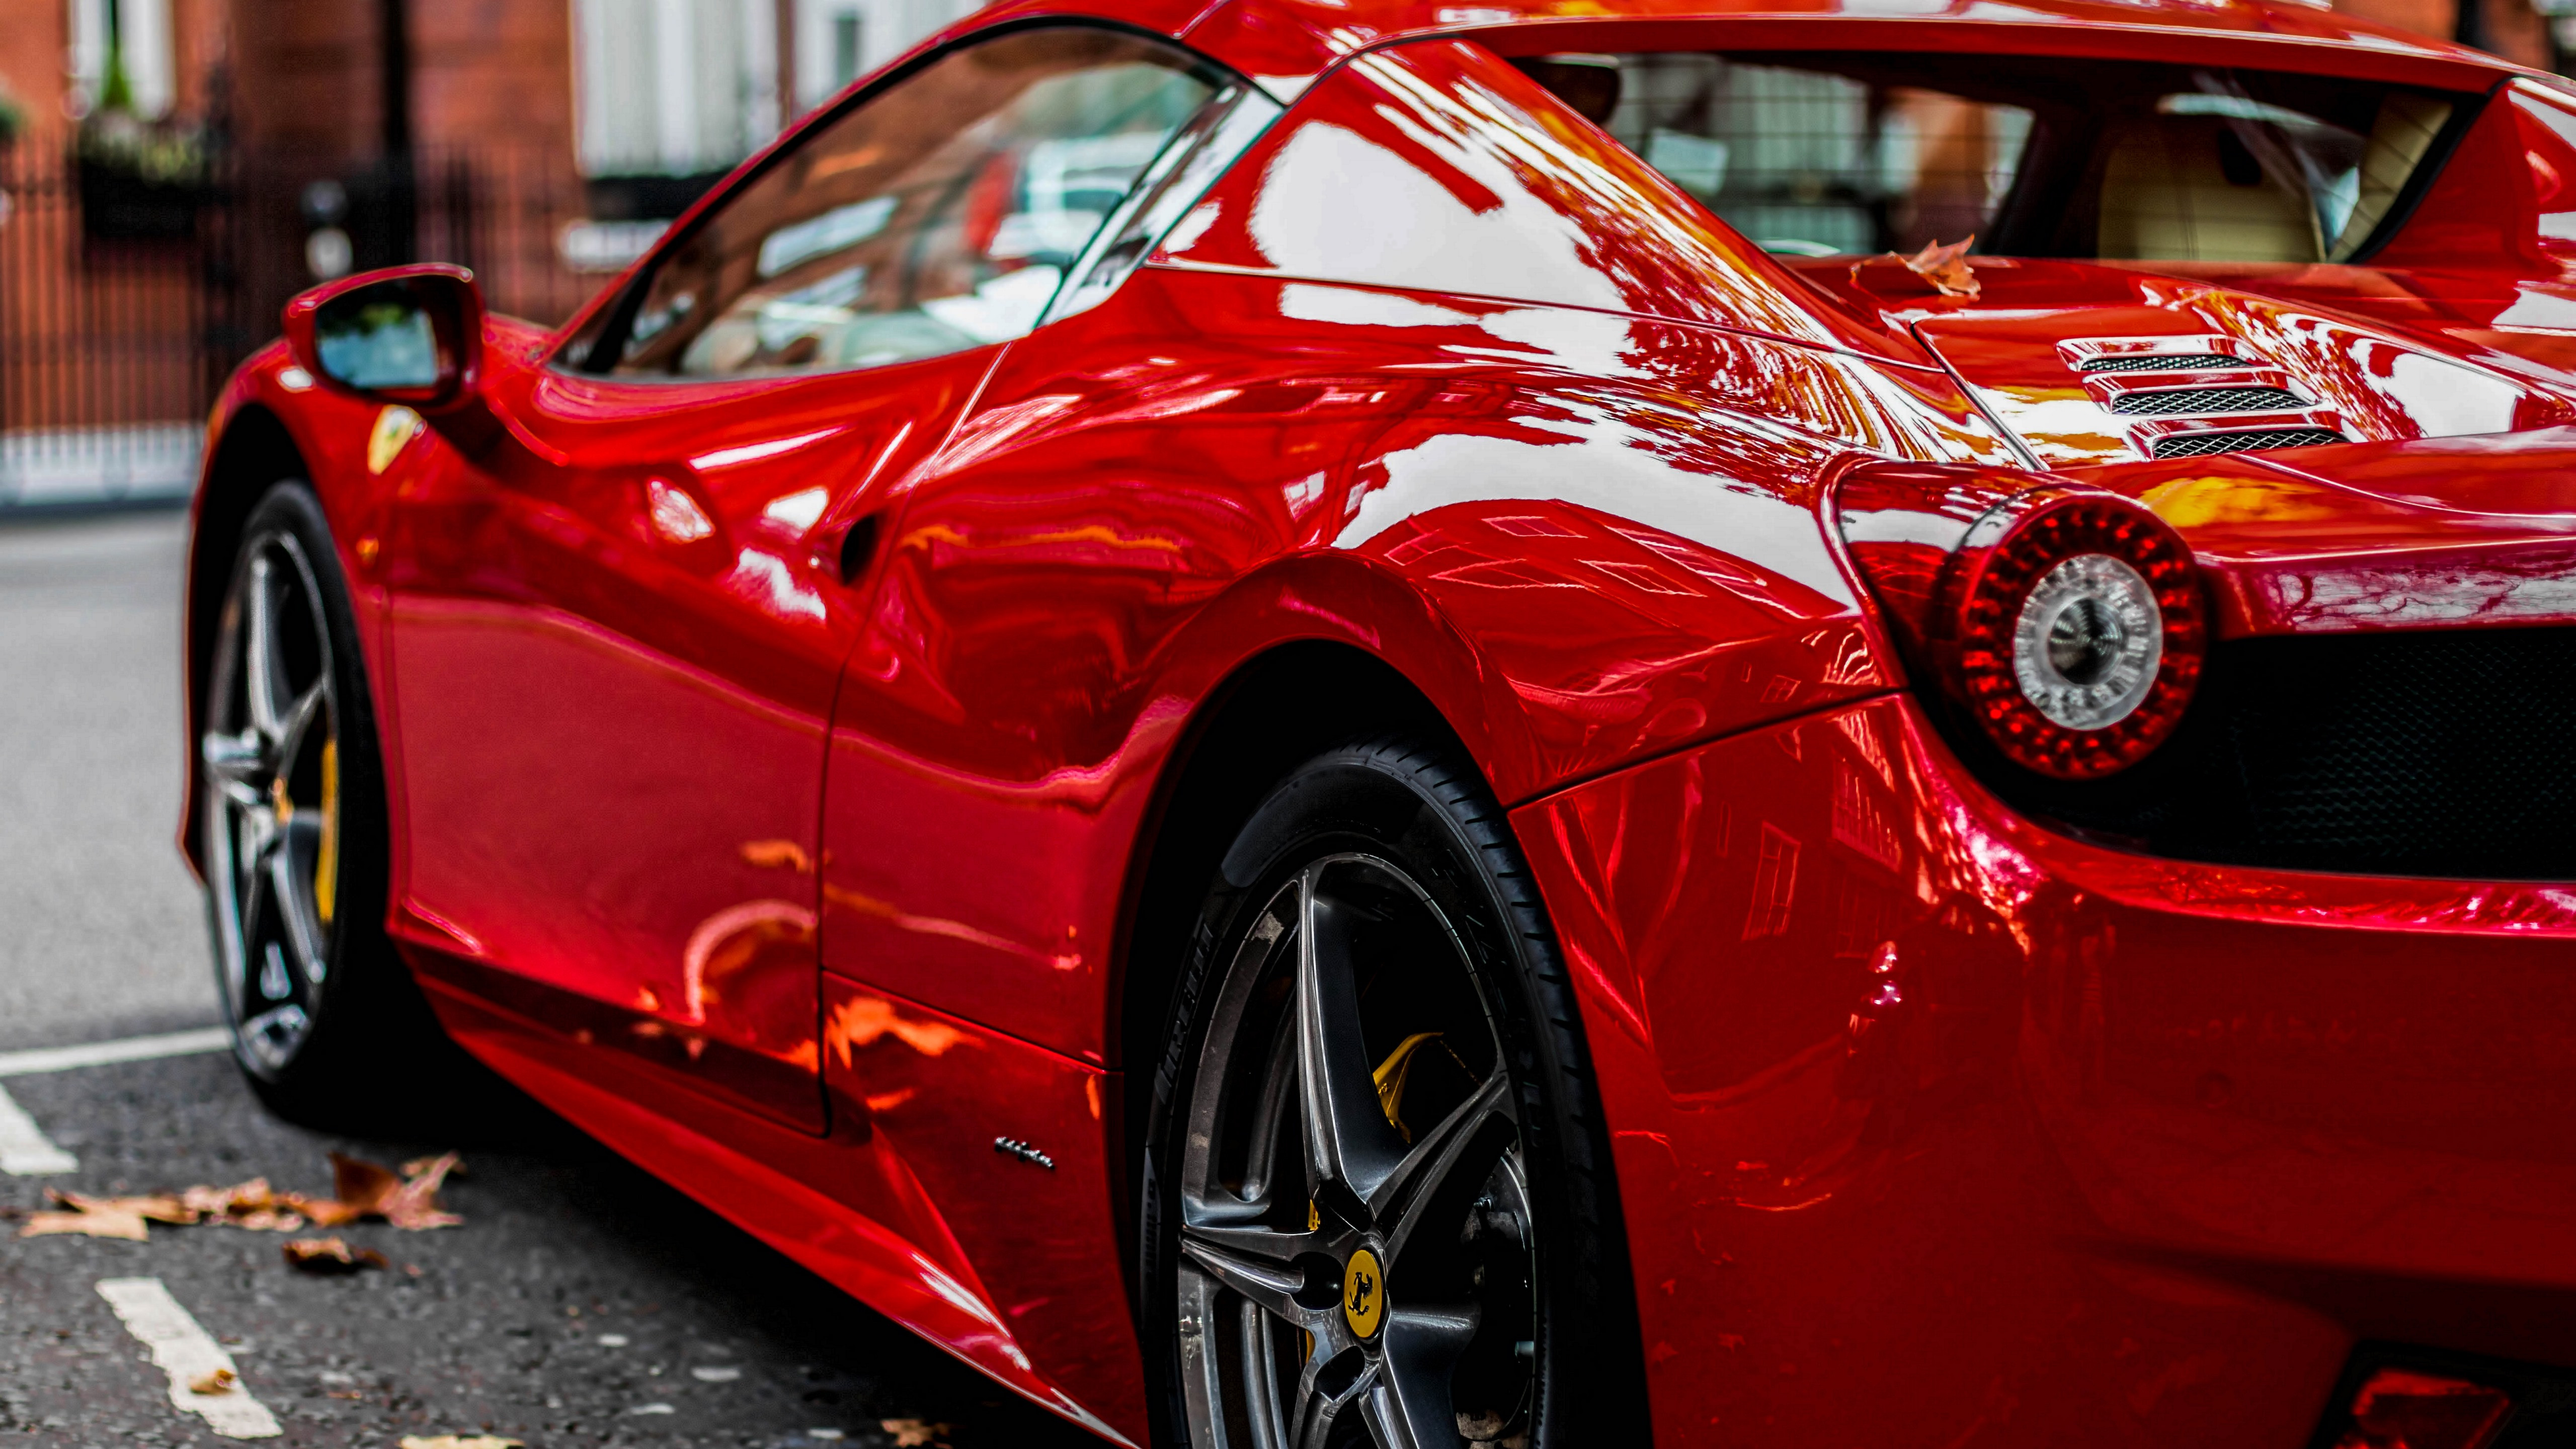 Red Ferrari wallpaper 5120x2880